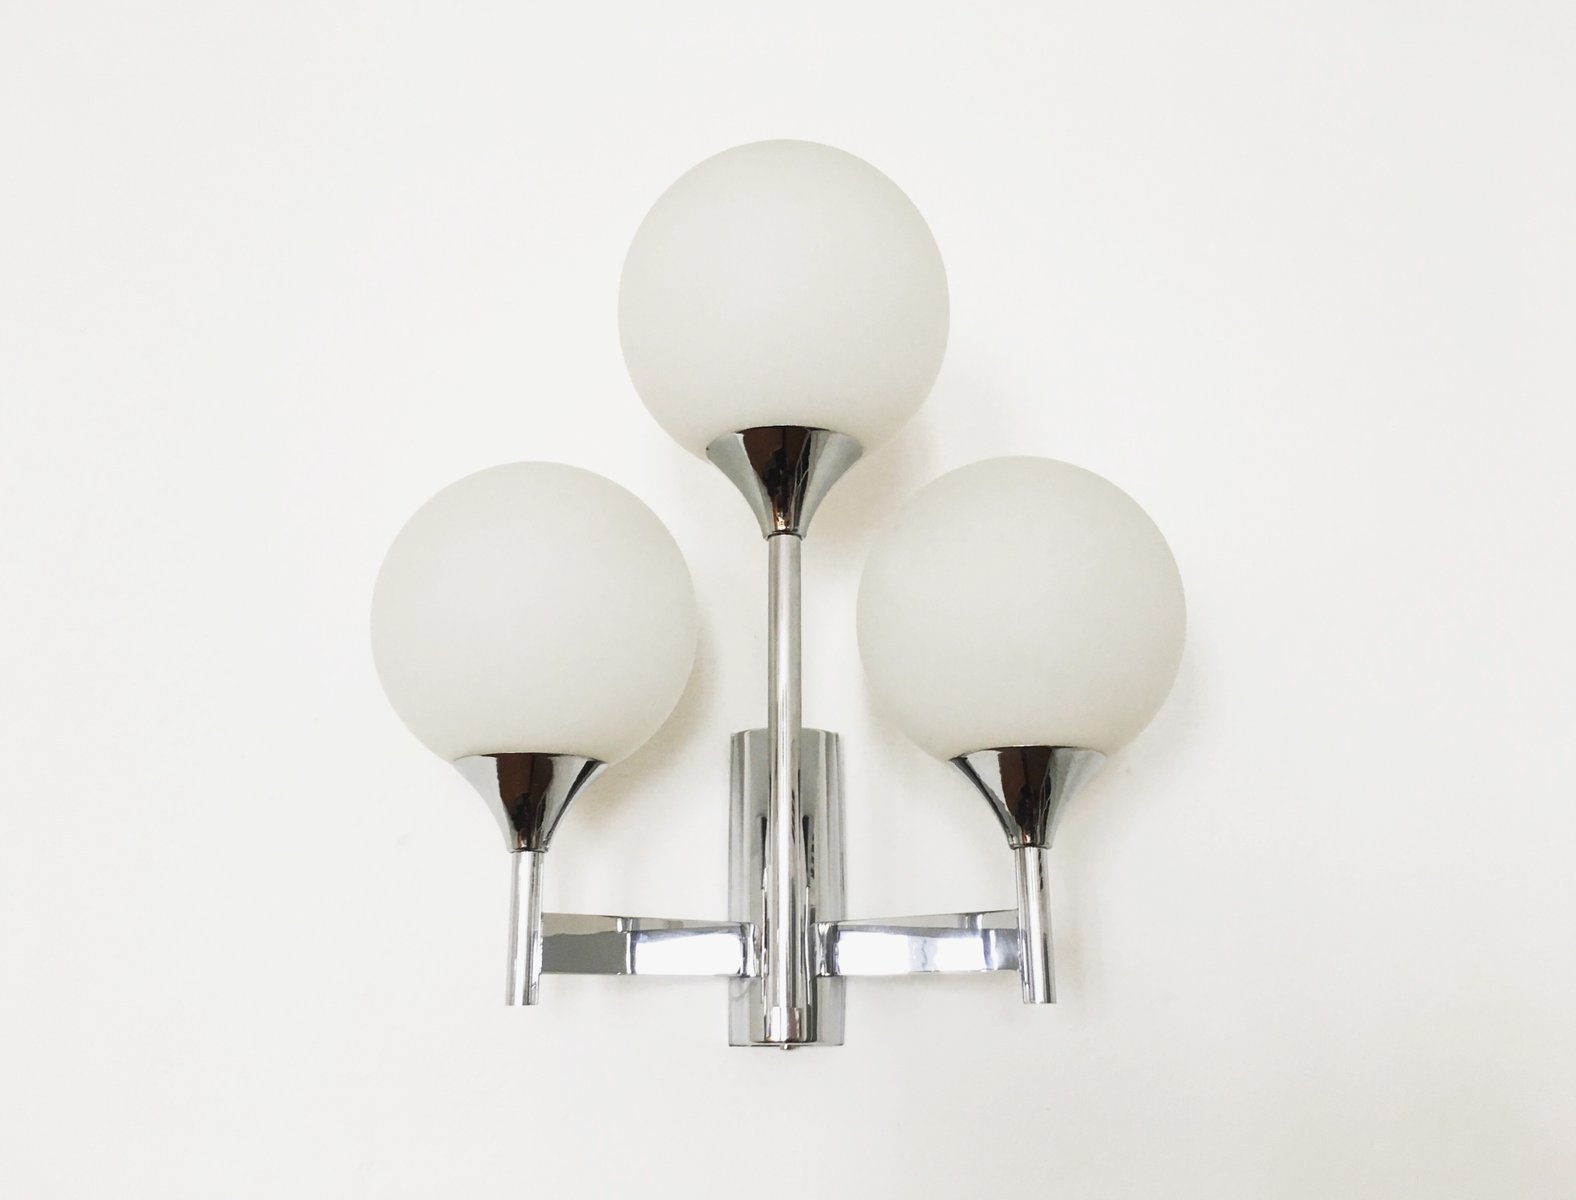 Leuchten Kaiser Sputnik Wall Light From Kaiser Leuchten, 1960s For Sale At Pamono